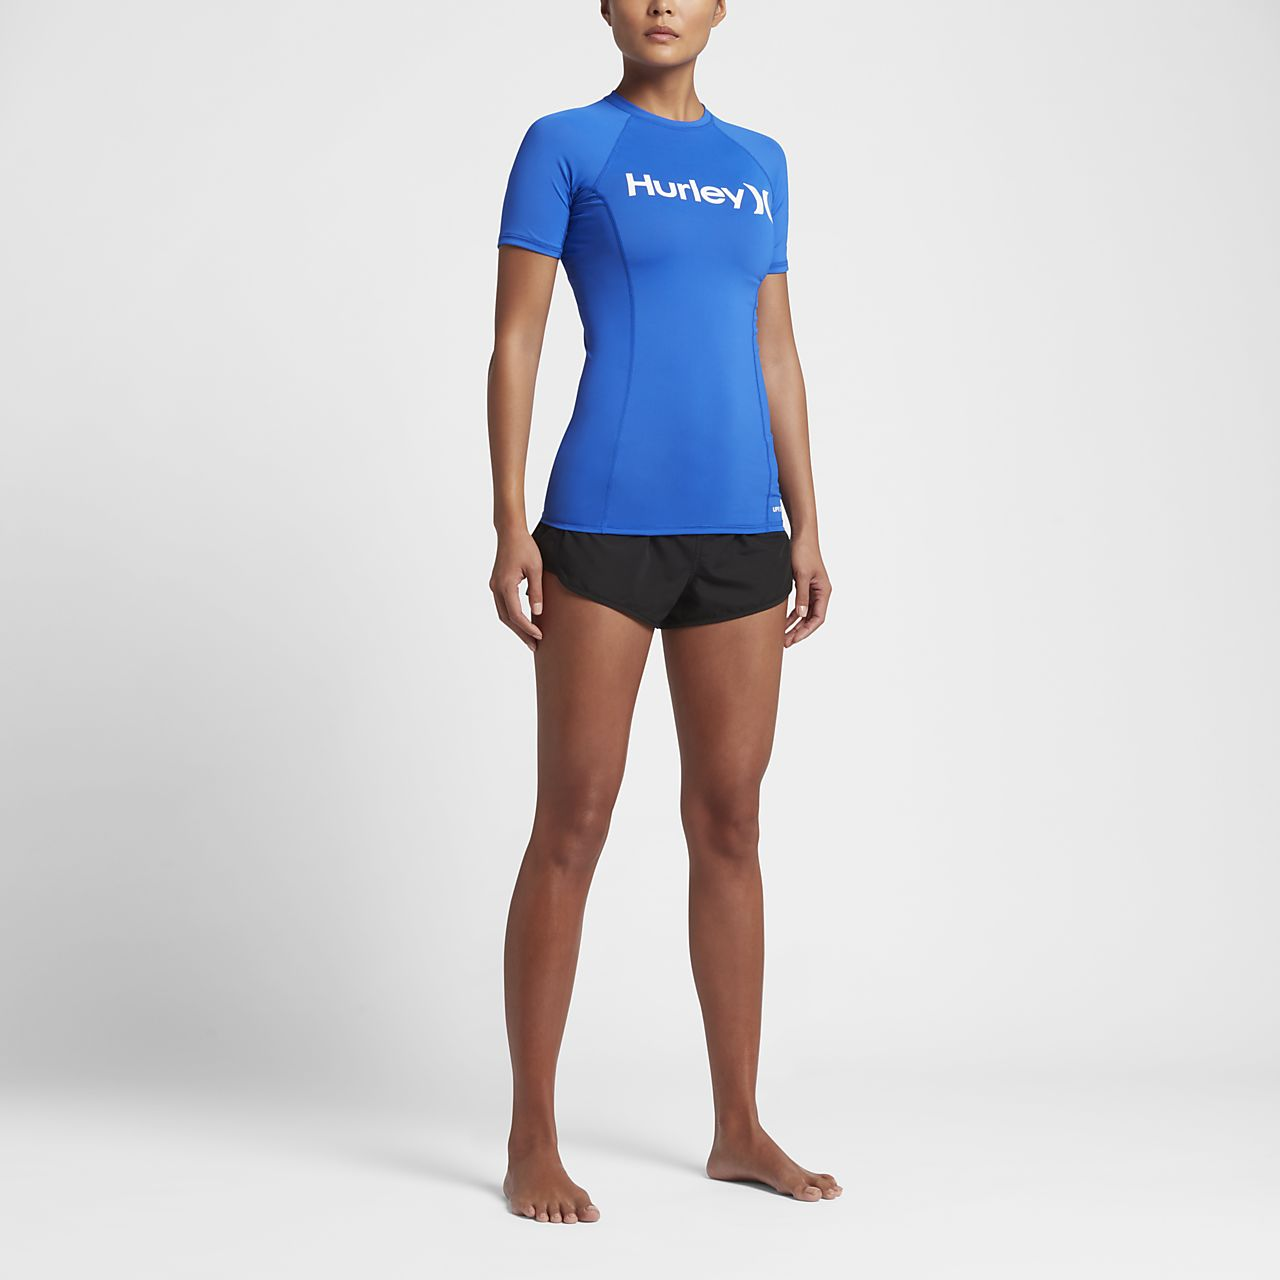 ... Hurley One And Only Women's Surf Shirt